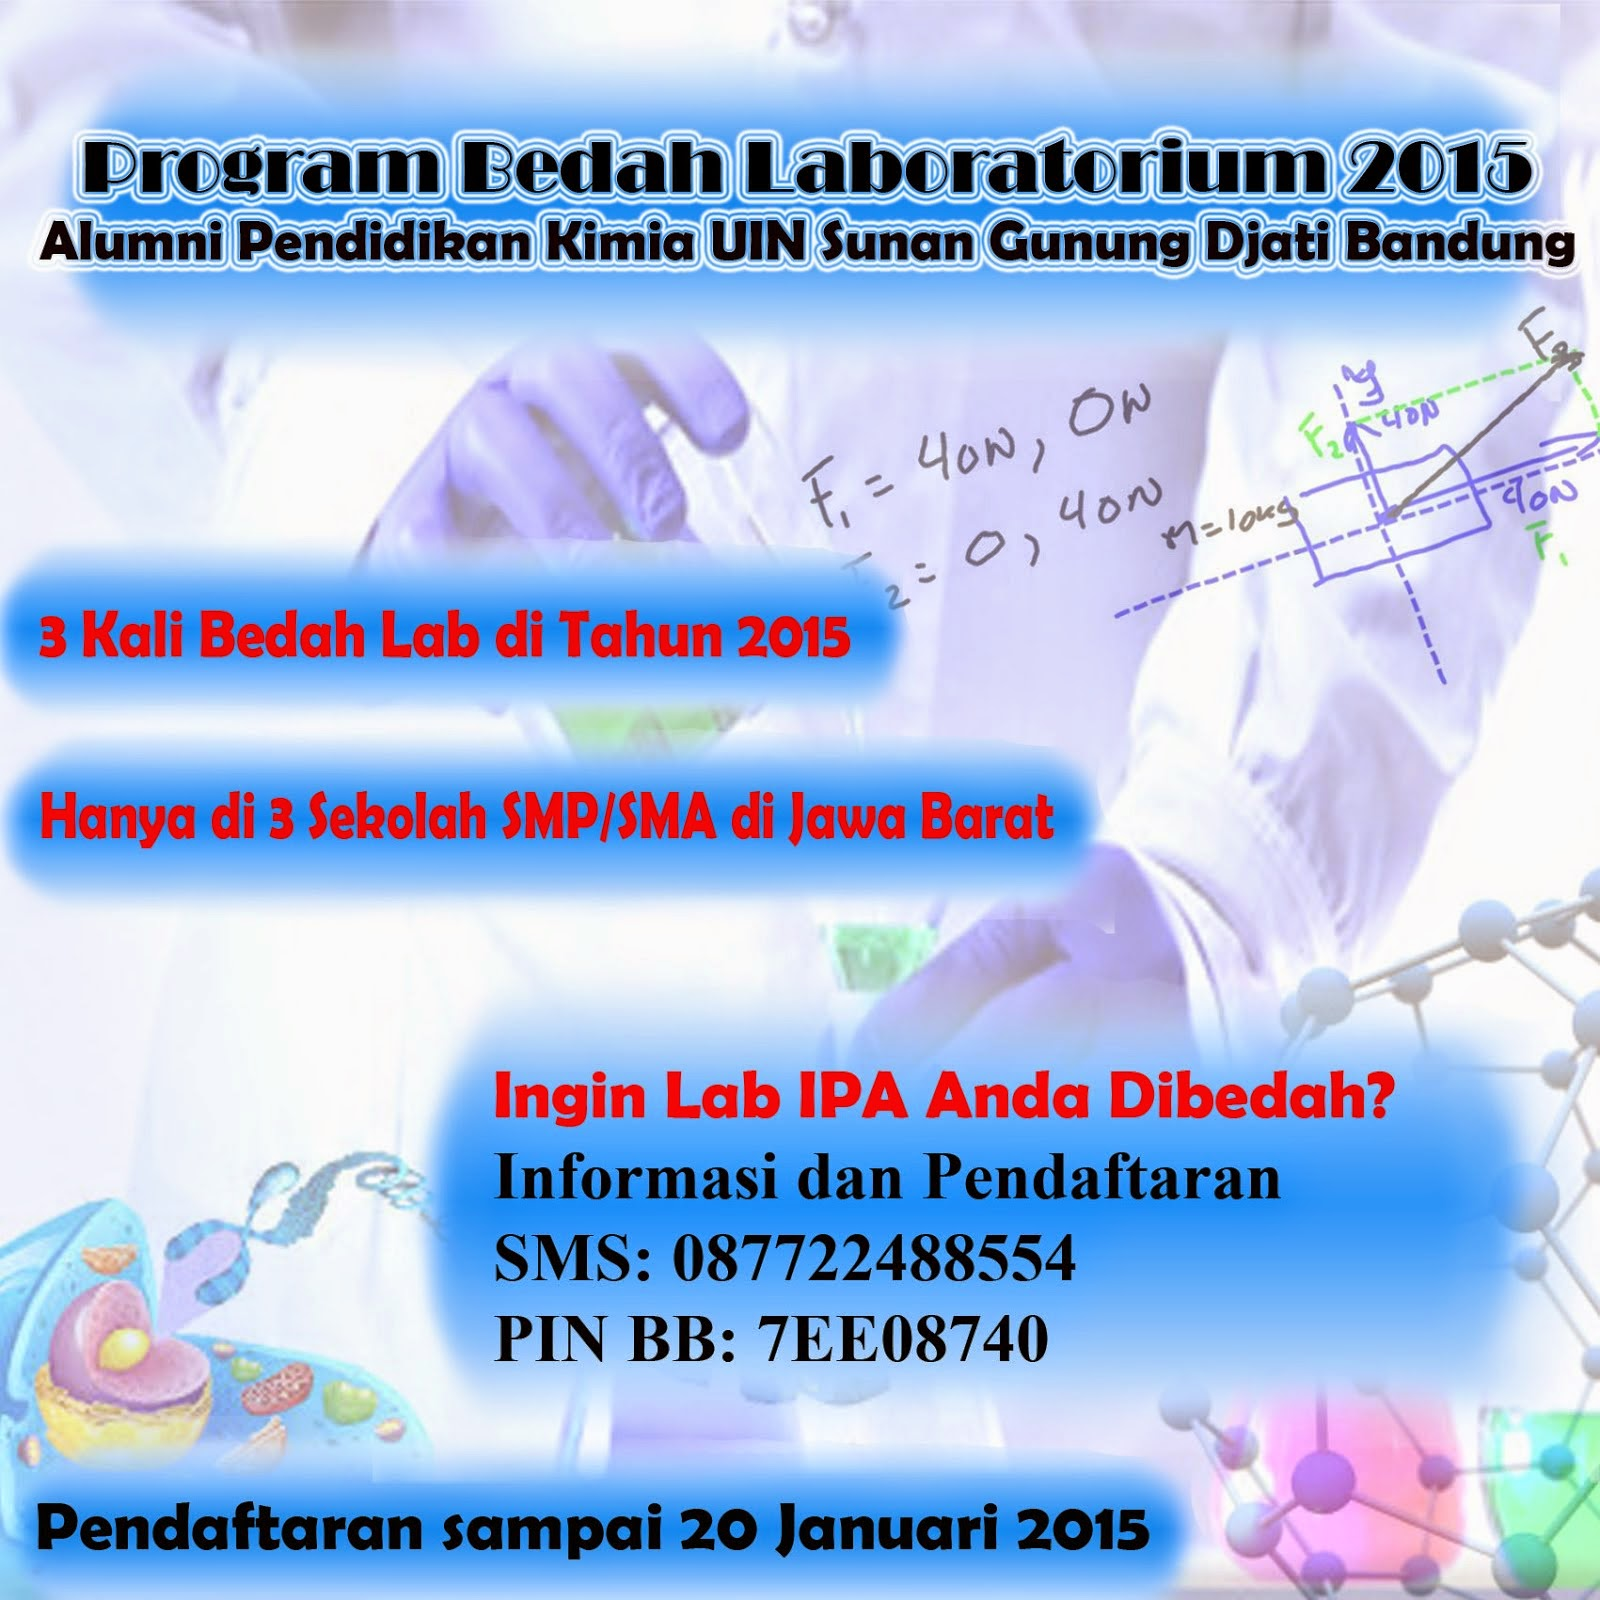 Program Bedah Laboratorium IPA